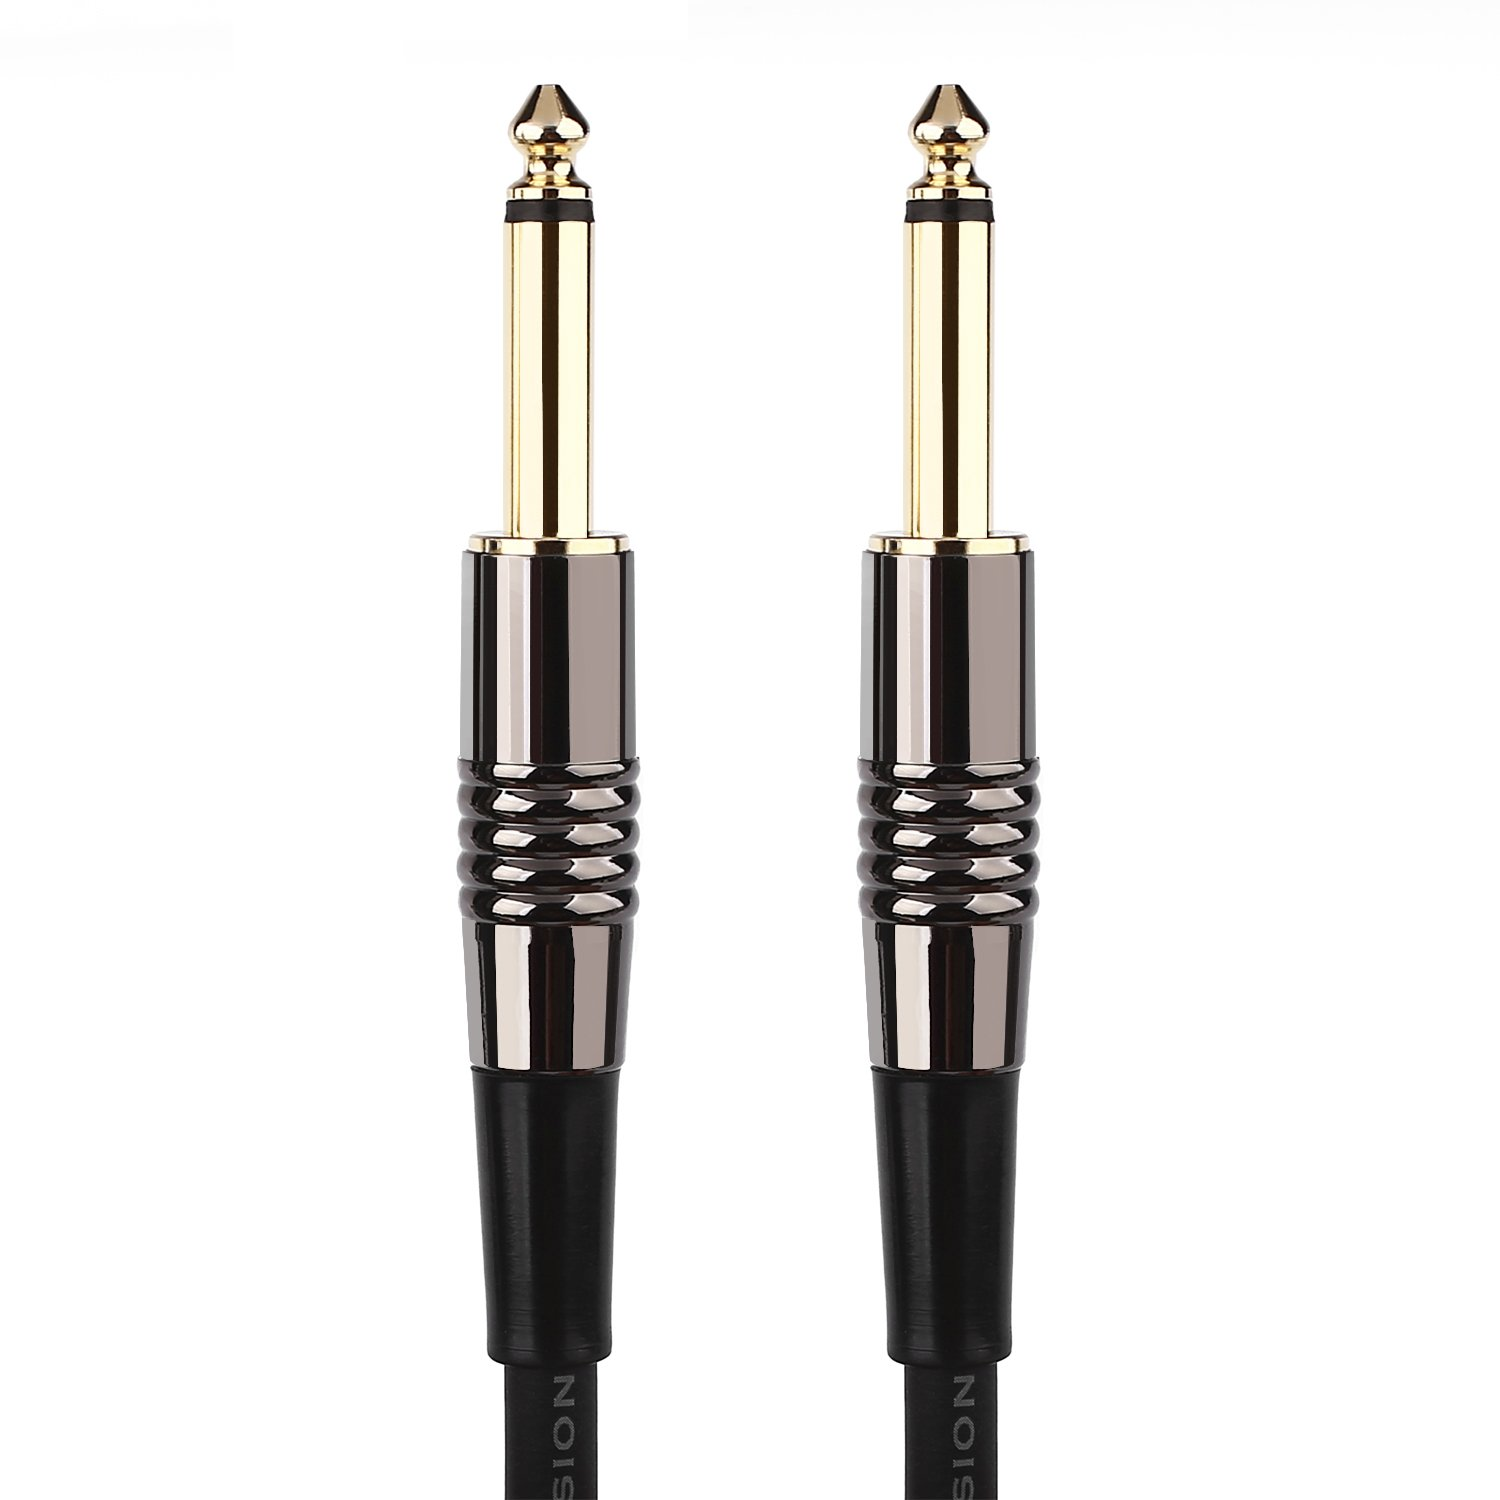 Mugig Guitar Cable with Gold Tipped Plugs, 1/4 Inch Cable Straight Male to Male Mono Instrument Cable for Guitar / Bass /Keyboard Music Instrument